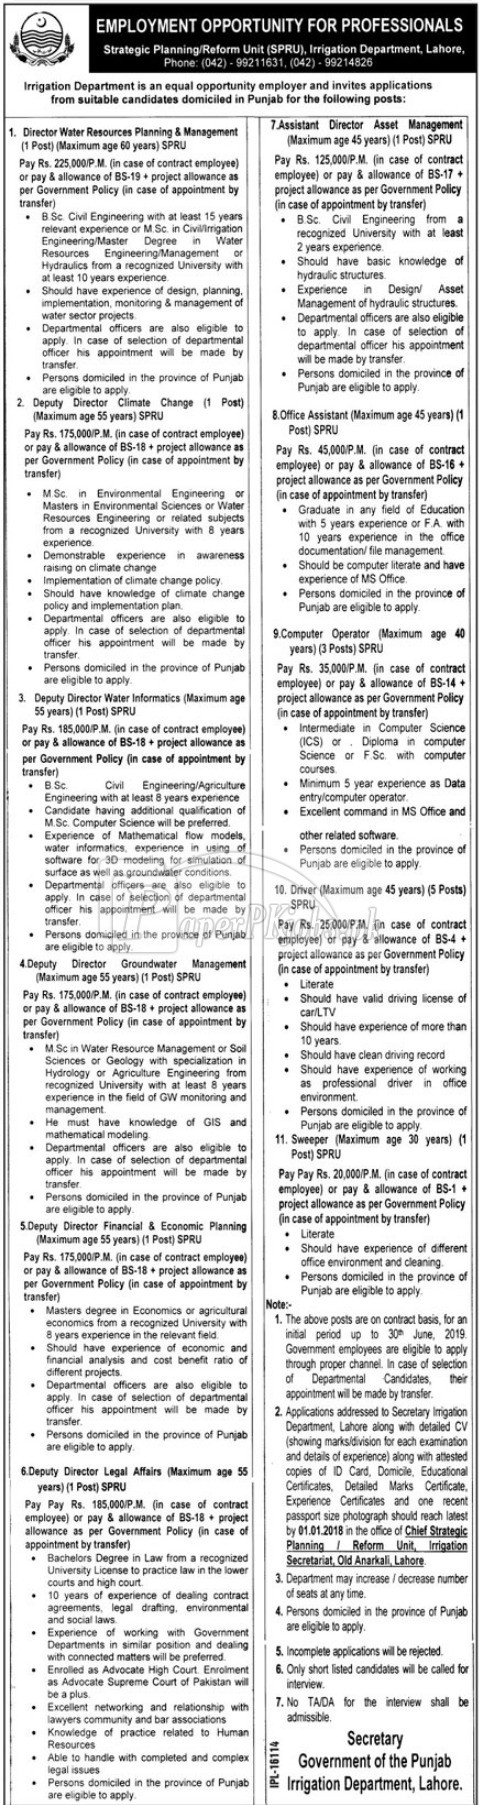 Irrigation Department Lahore Government of Punjab Jobs 2017